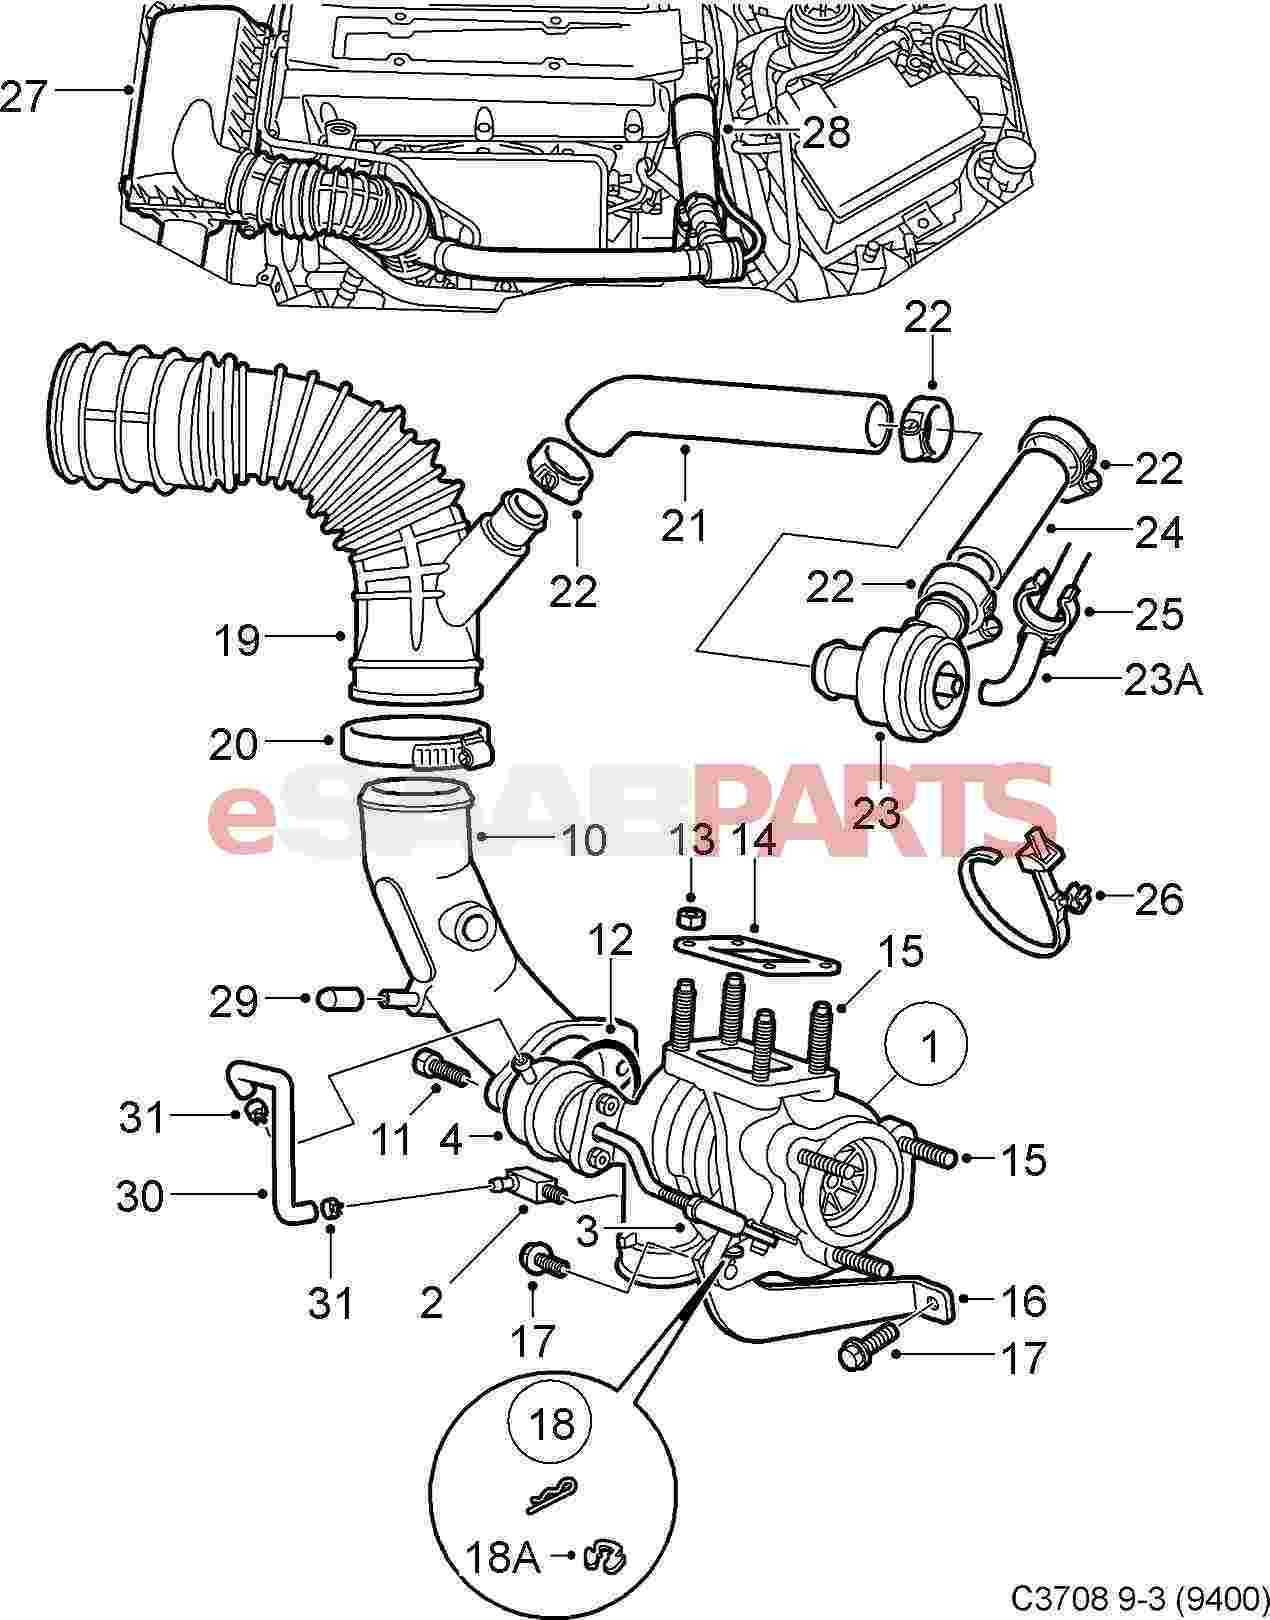 hight resolution of saab 93 engine diagram 8 18 artatec automobile de u2022saab 9 3 2003 turbo diagram